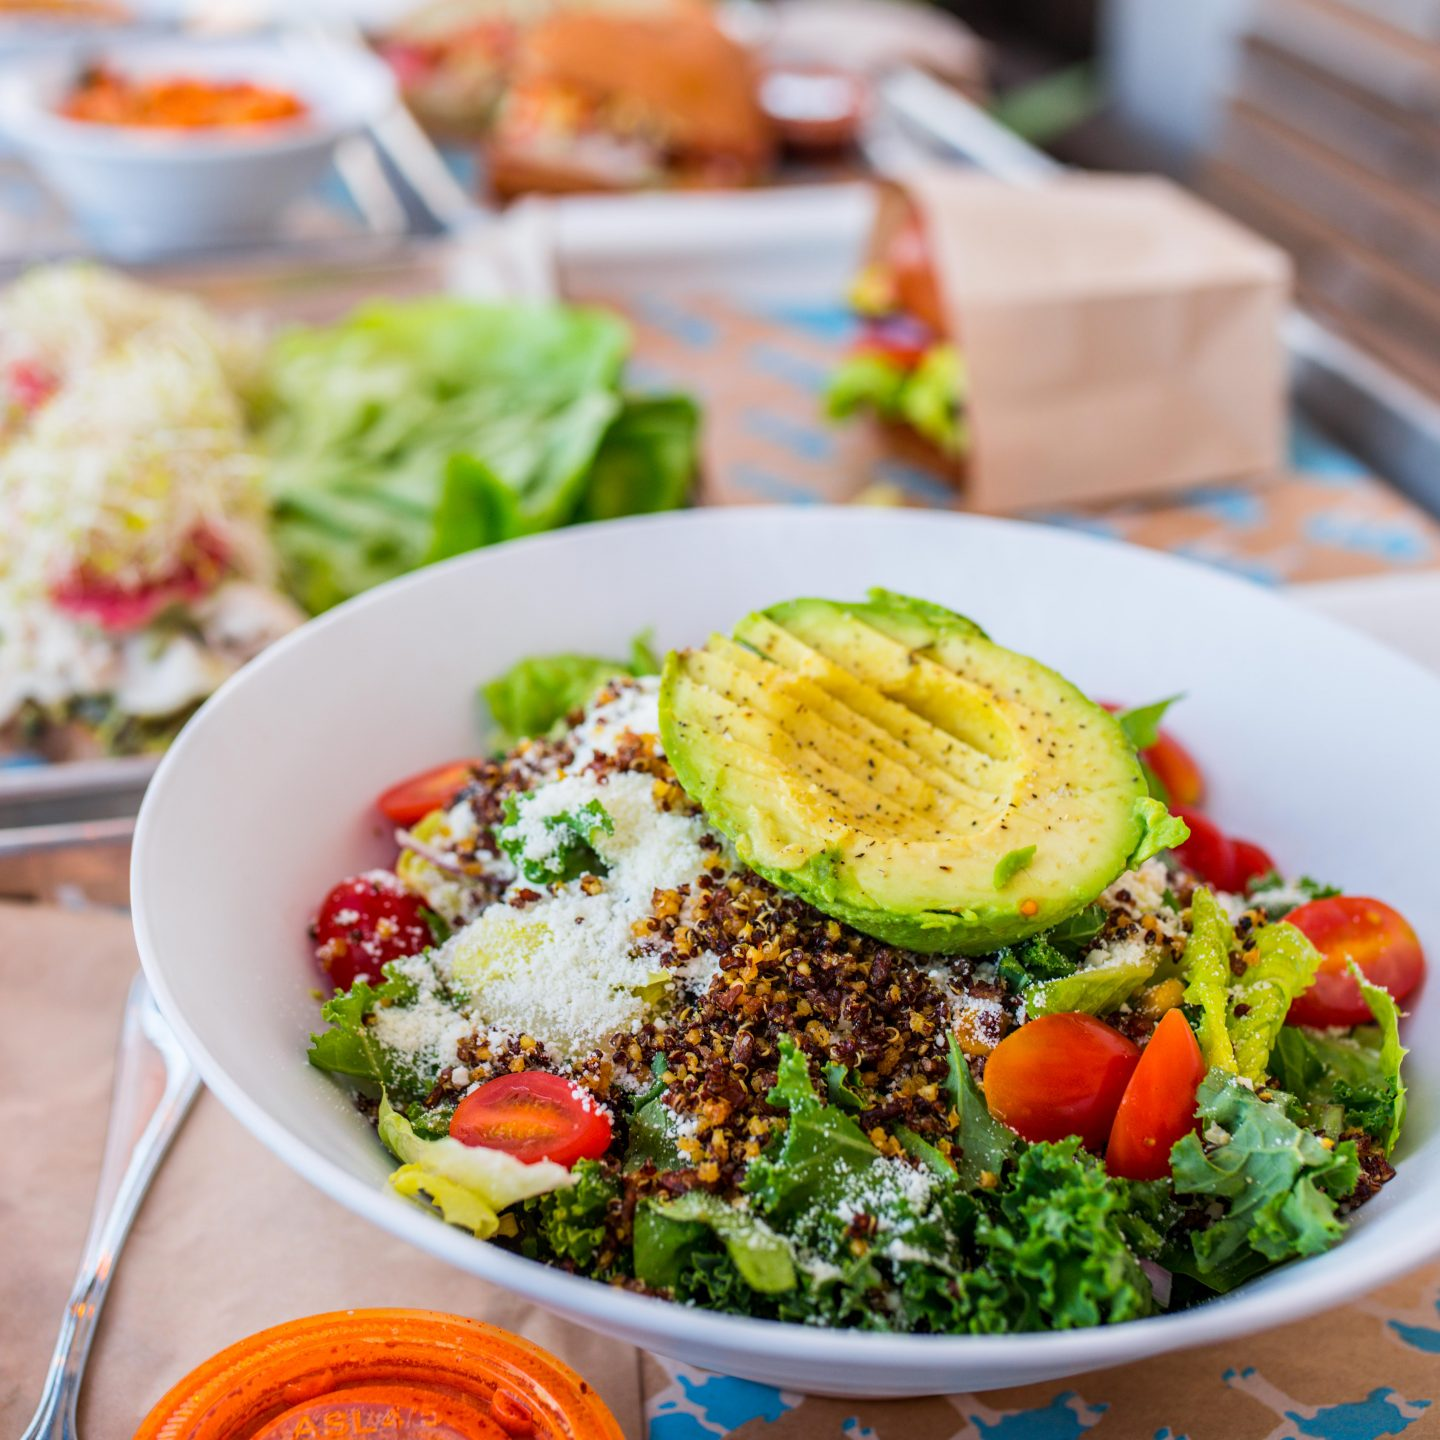 Avocado & Quinoa Superfood Ensalada